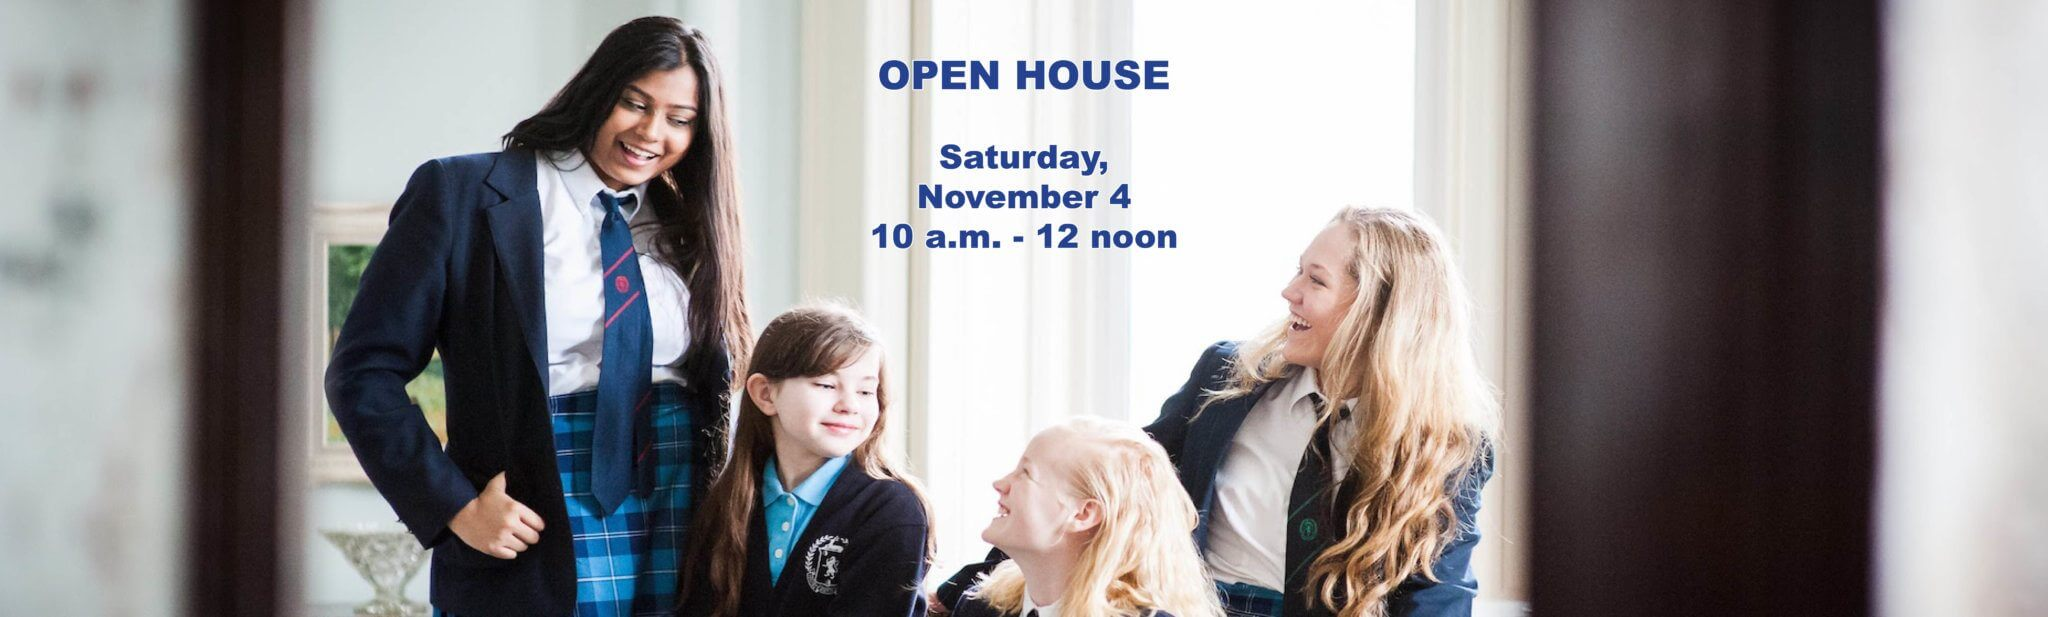 Open House Banner for Day Admissions Page